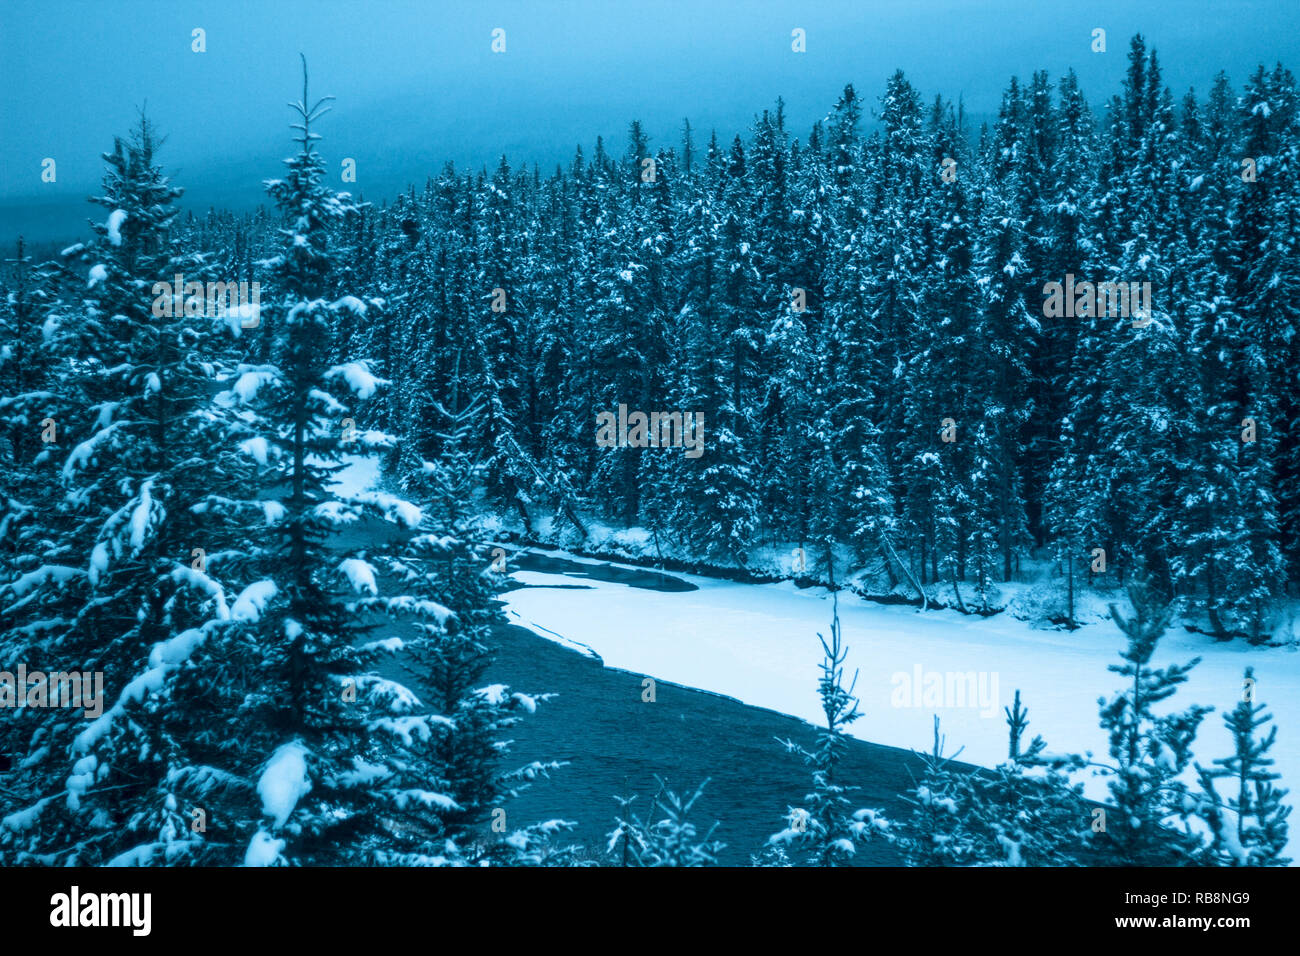 Whether you feel blue or love the colour blue, Banff National Park, Alberta, Canada, offers soothing forests, mountains & water. Stock Photo